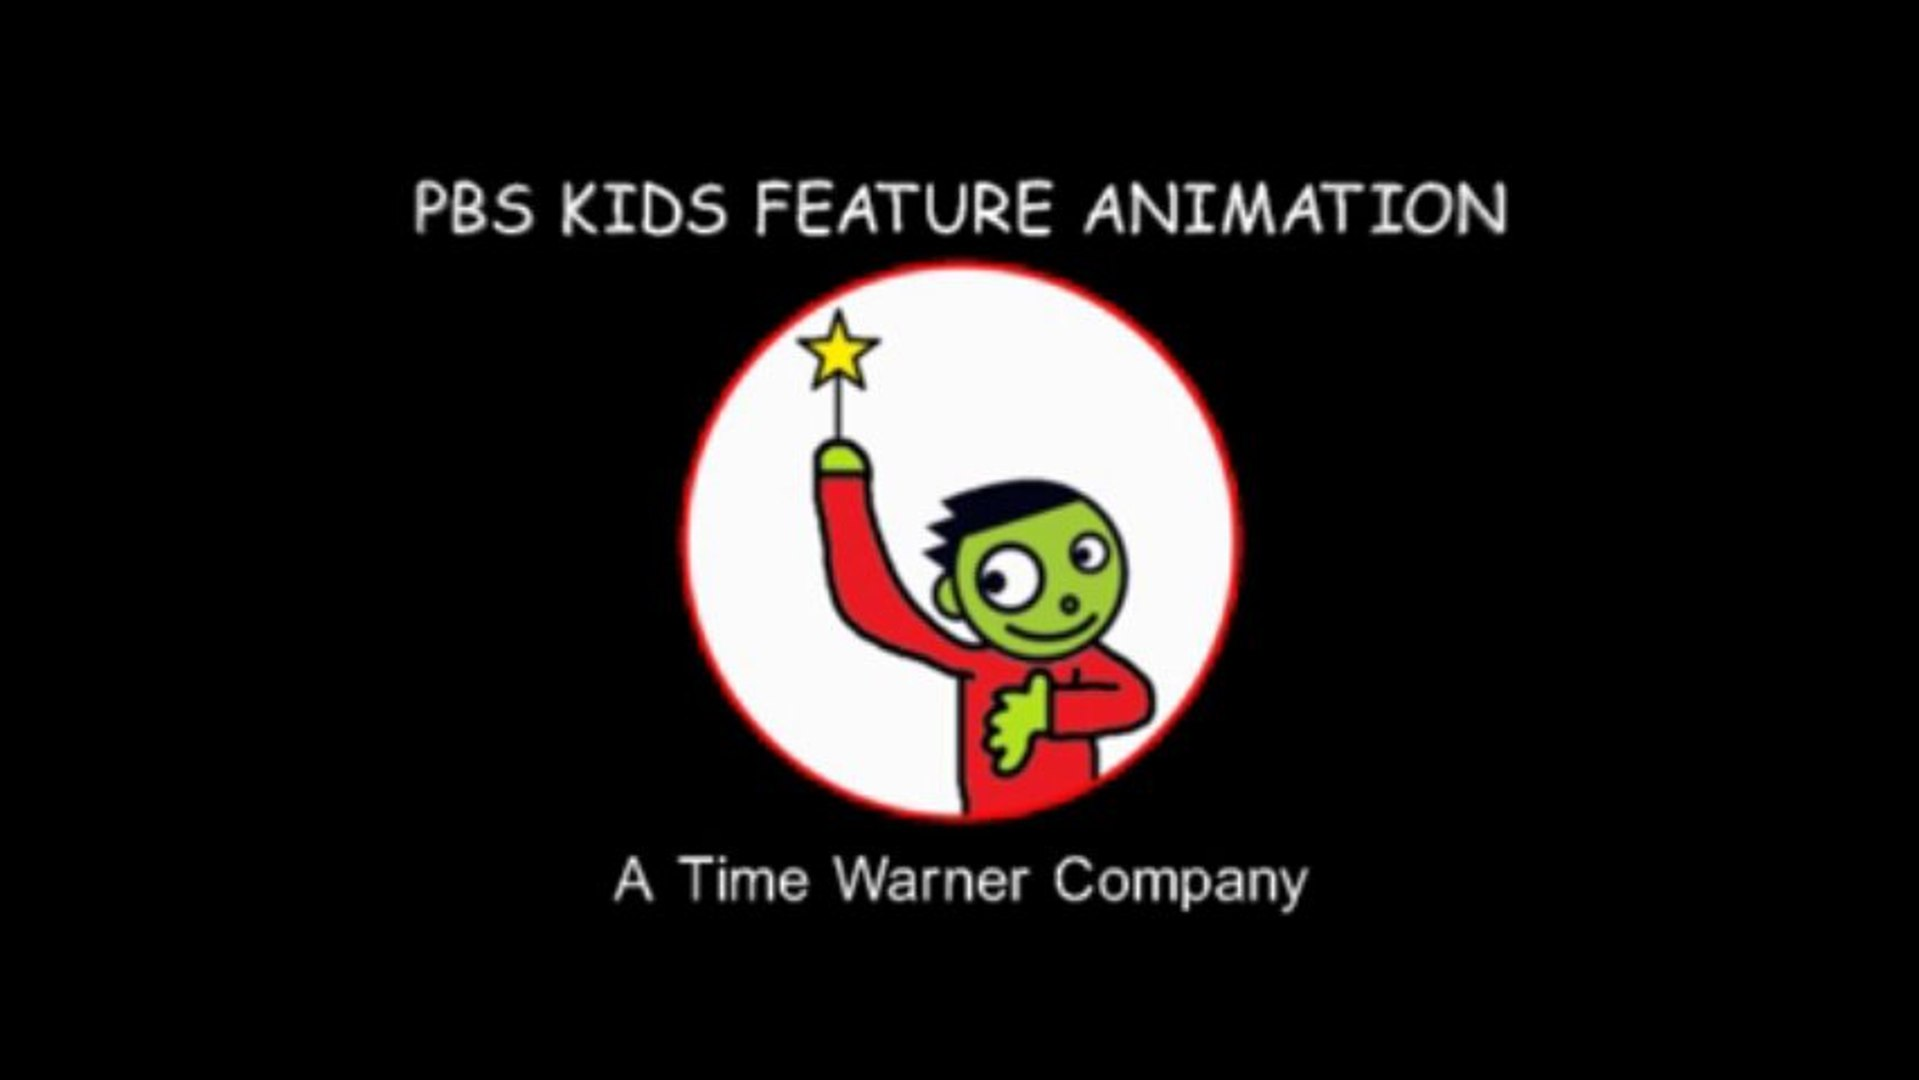 PBS Kids Feature Animation (2000-2012)